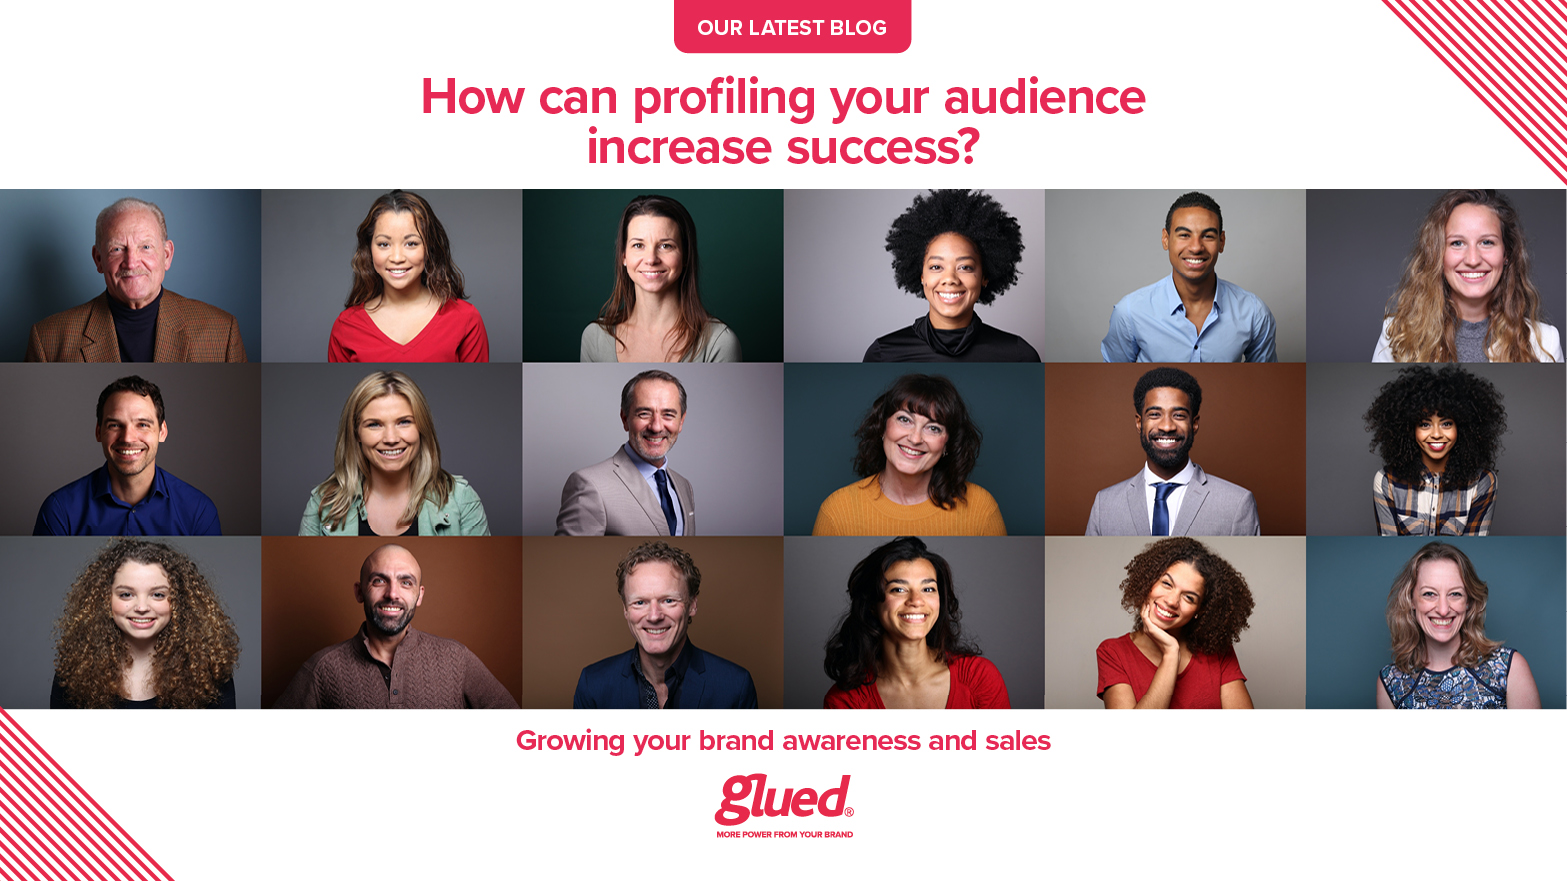 How can profiling your audience increase success?